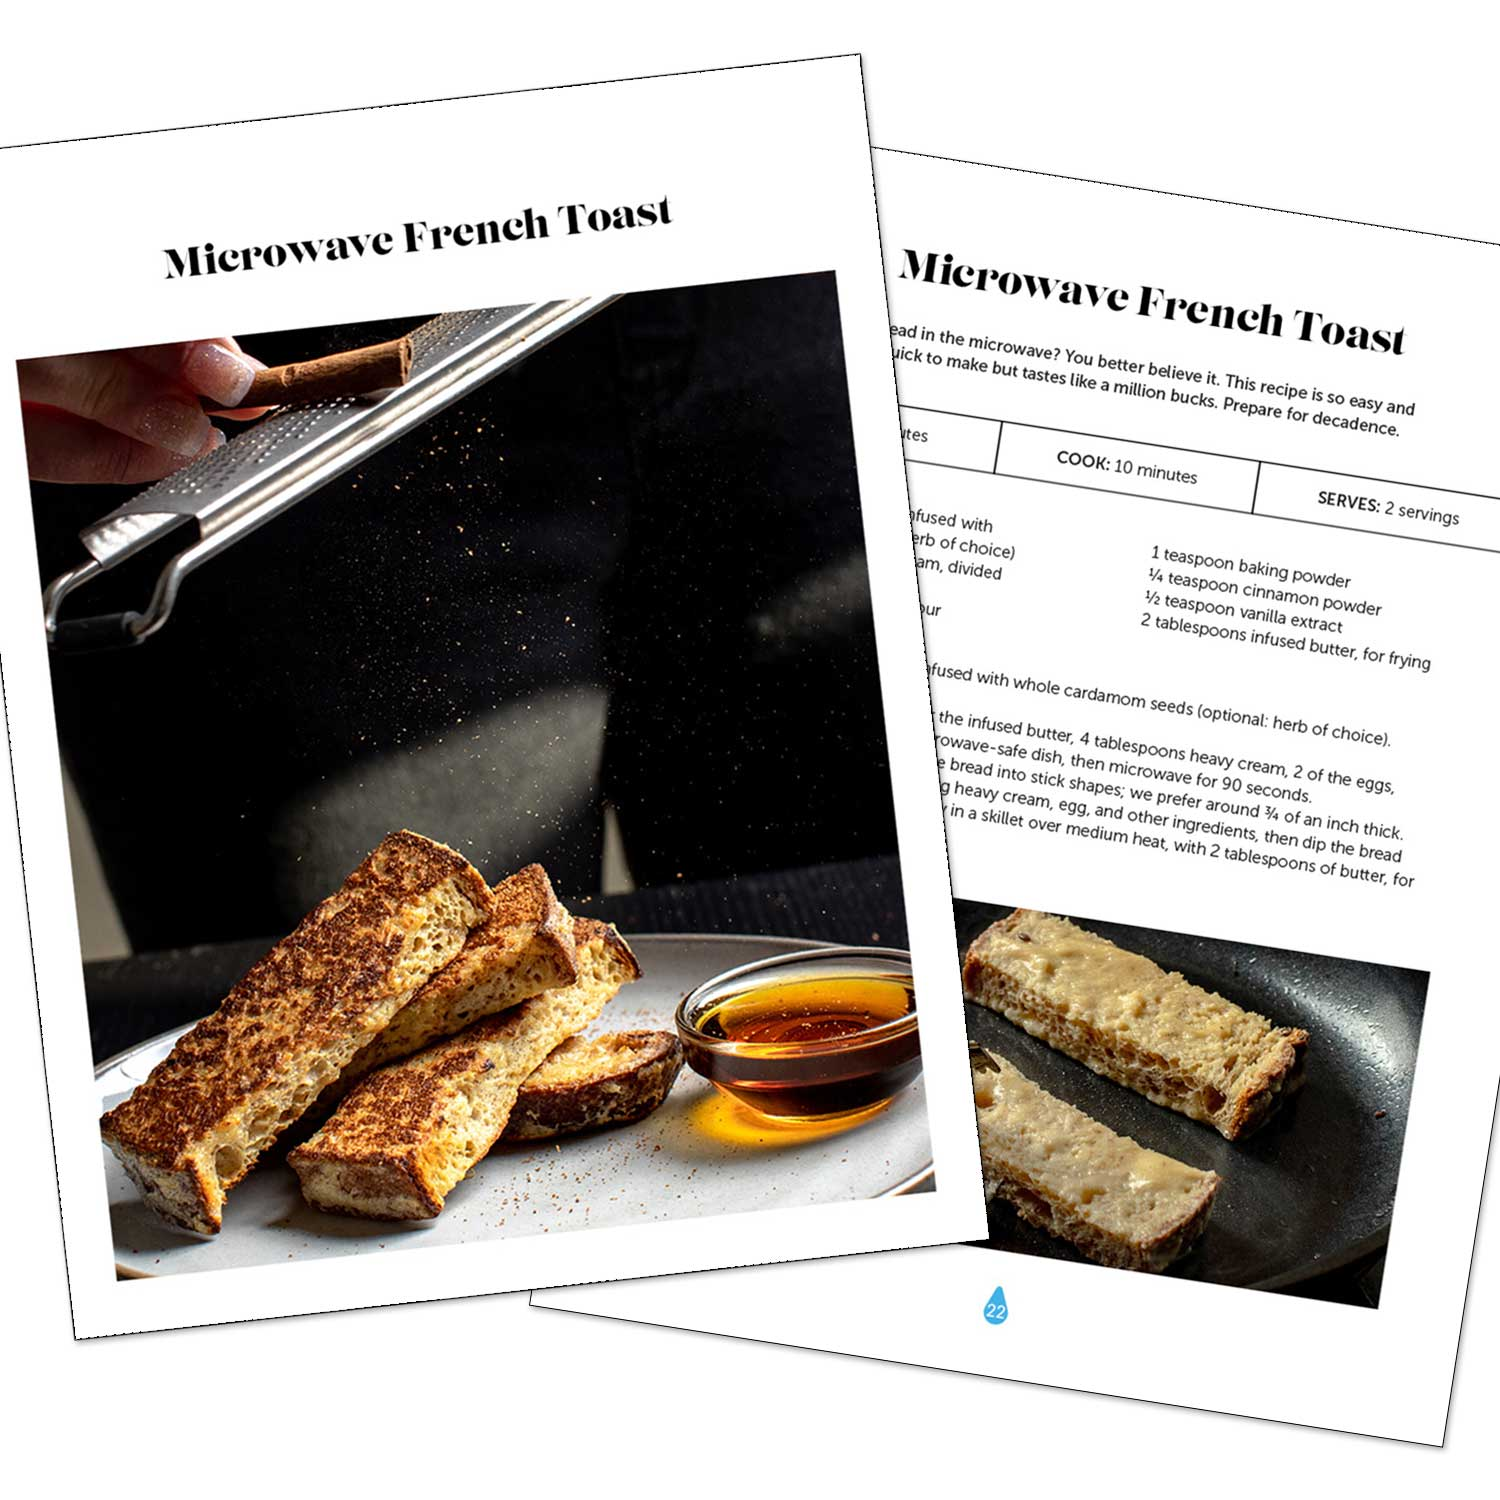 Keto carb-free French Toast?! Yes, it's possible (and delicious). LEVO's Keto cookbook makes ketogenic breakfast, lunch, dinner, and dessert easy. These tasty recipes are perfect for your whole family, or they can be modified for adults-only using flower infused into butter and healthy oils. Gluten-free, carb-free, keto, and even vegan - LEVO's Keto cookbook has it all to make oil infusion easy and mess-free.